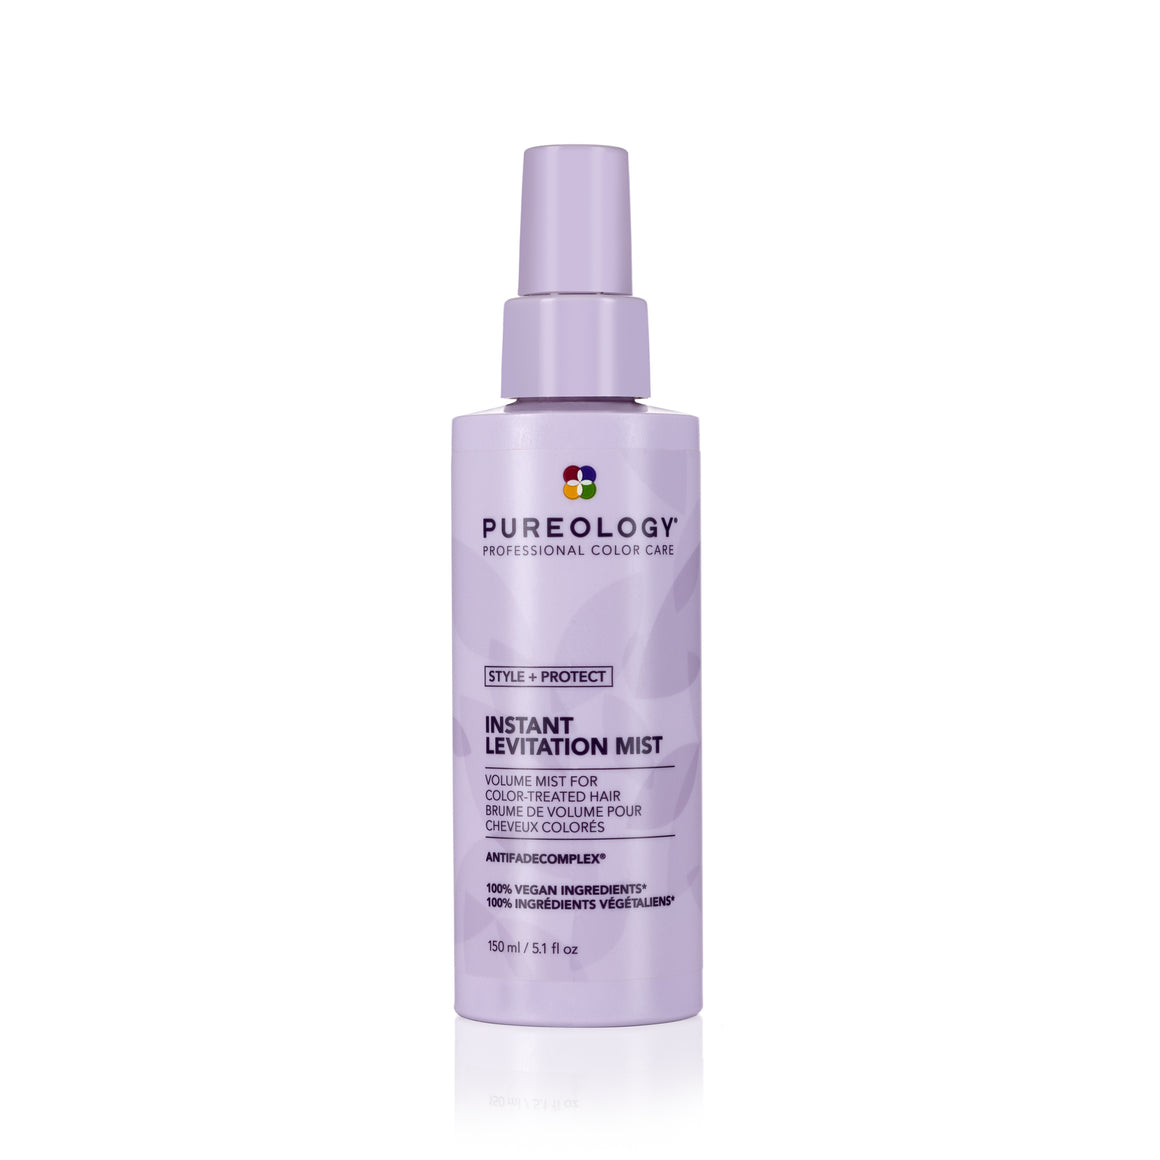 Pureology Instant Levitation Mist 145ml